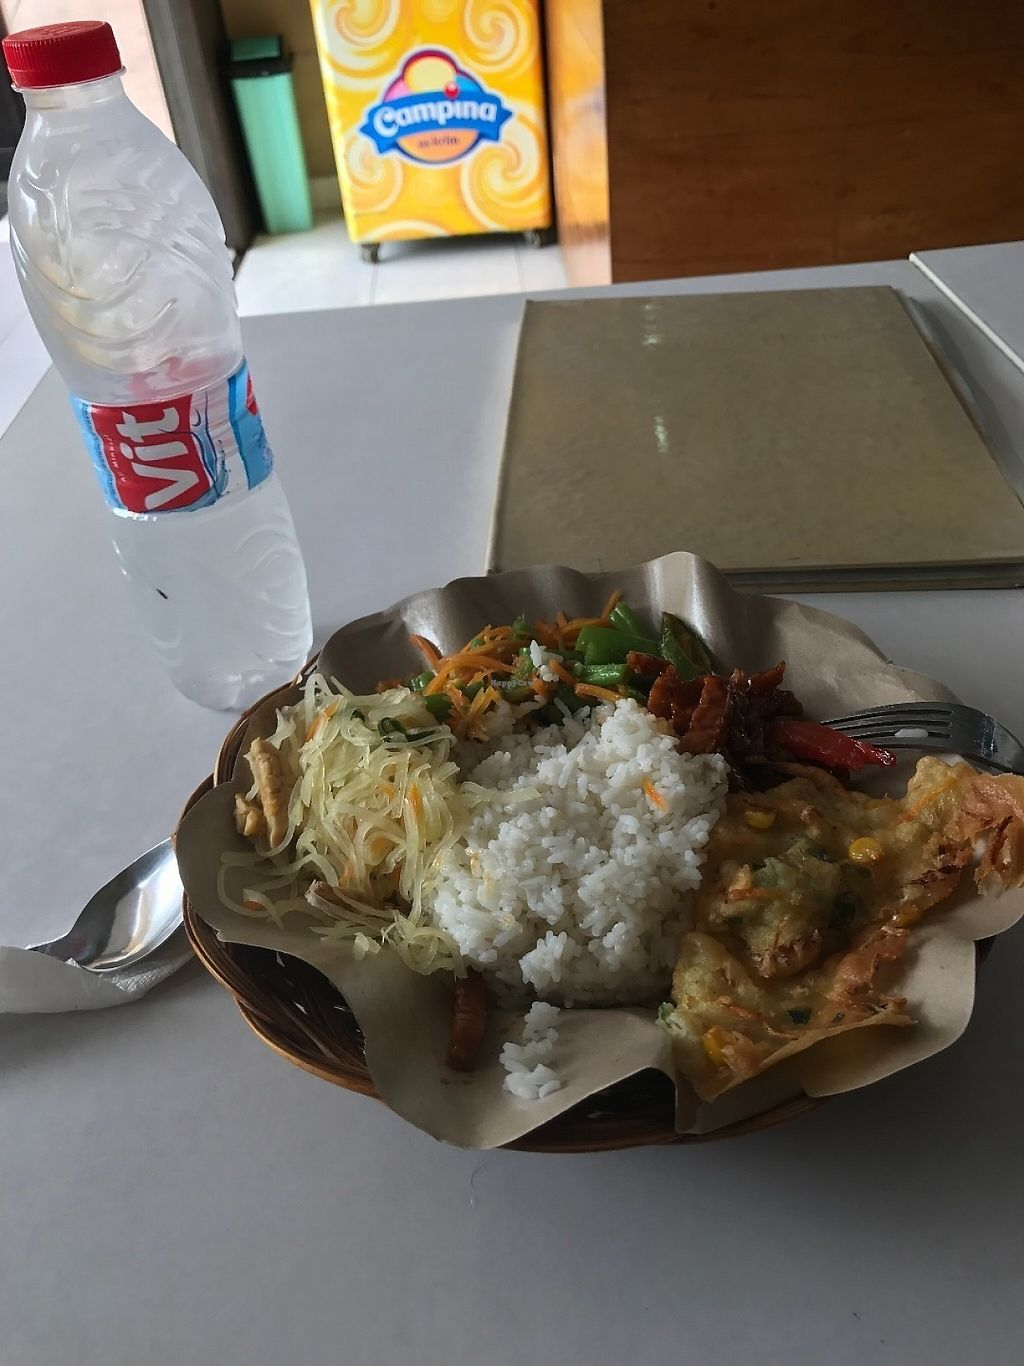 """Photo of CLOSED: Loving Hut - Malioboro  by <a href=""""/members/profile/Tim_nottingham"""">Tim_nottingham</a> <br/>Choice from ready cooked  <br/> May 4, 2017  - <a href='/contact/abuse/image/33479/255359'>Report</a>"""